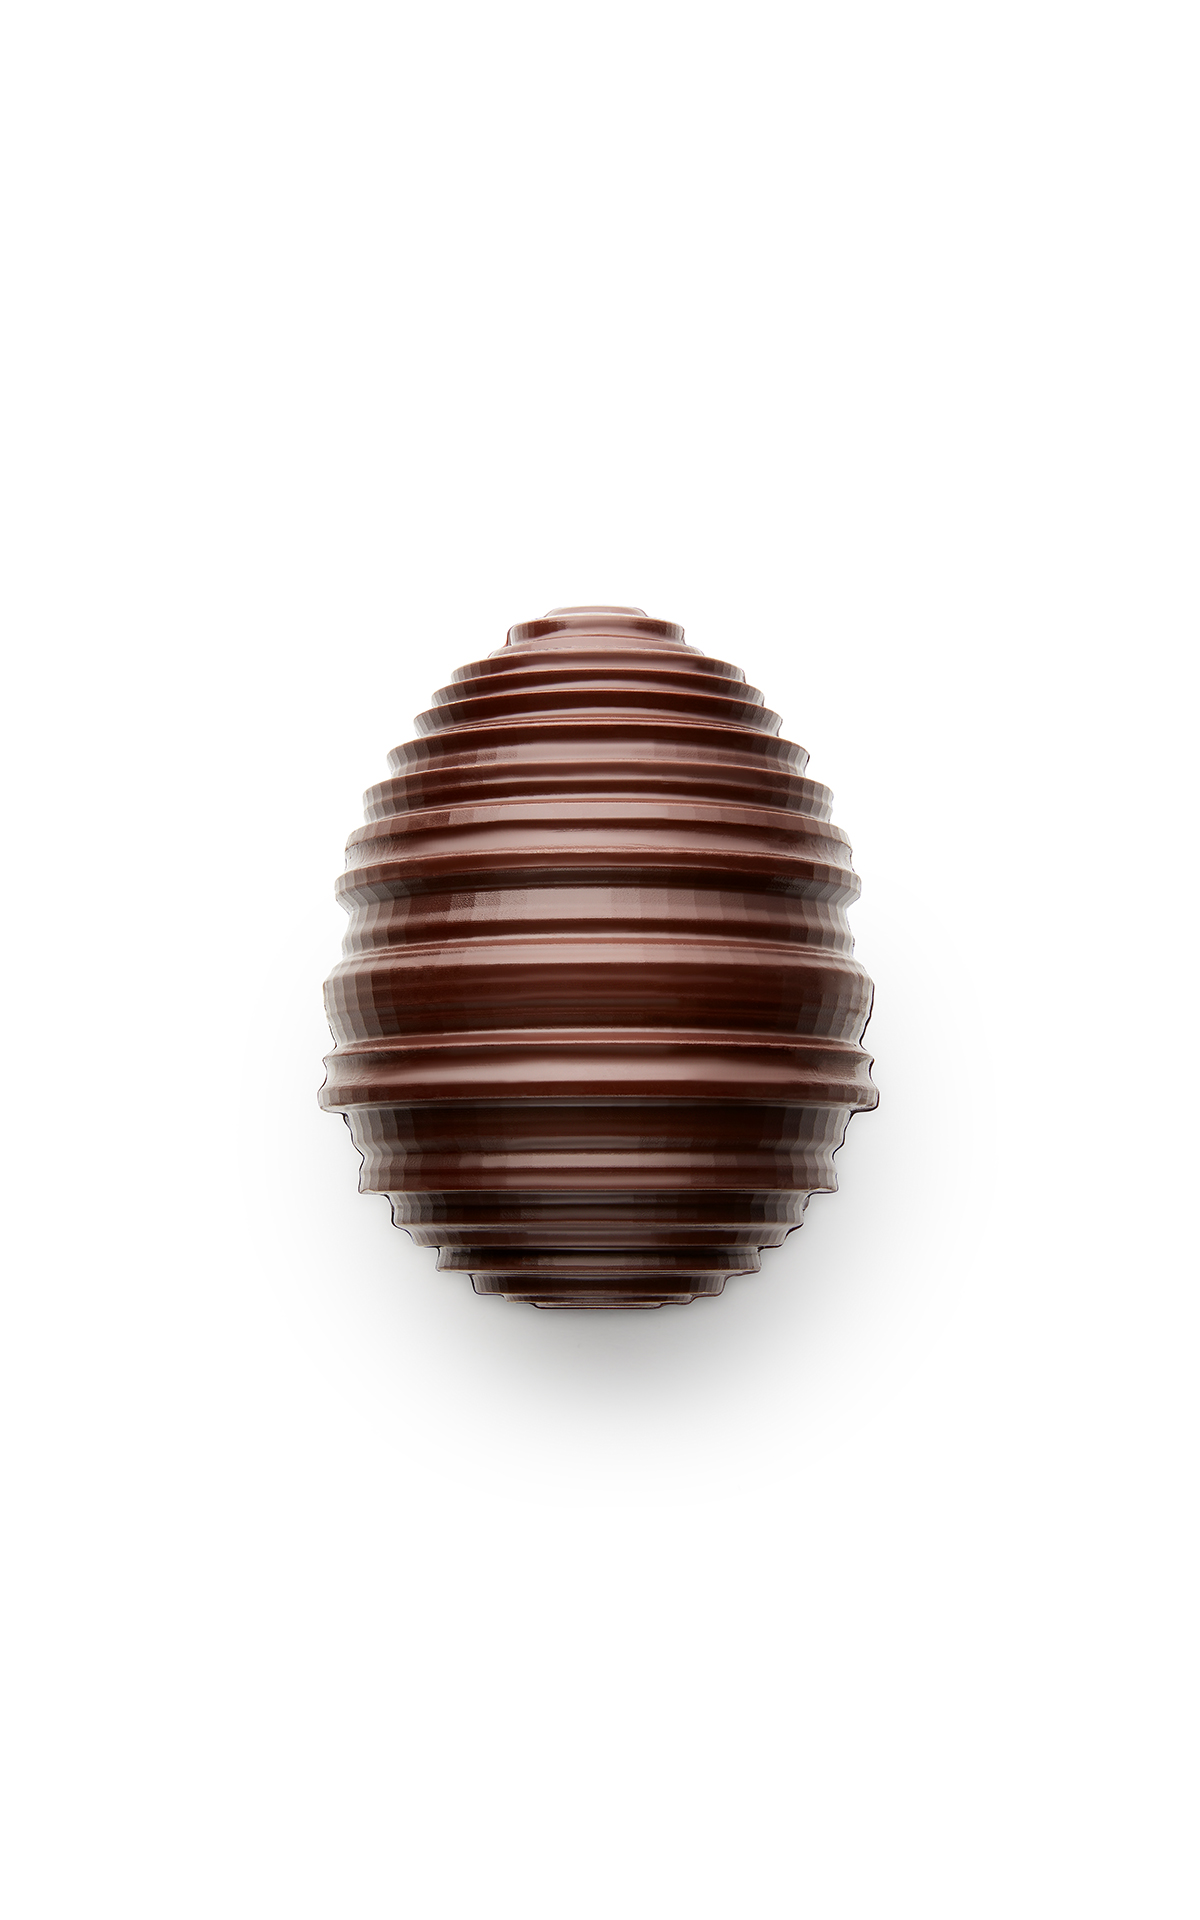 La Vallée Village Le Chocolat Alain Ducasse The small turned easter egg